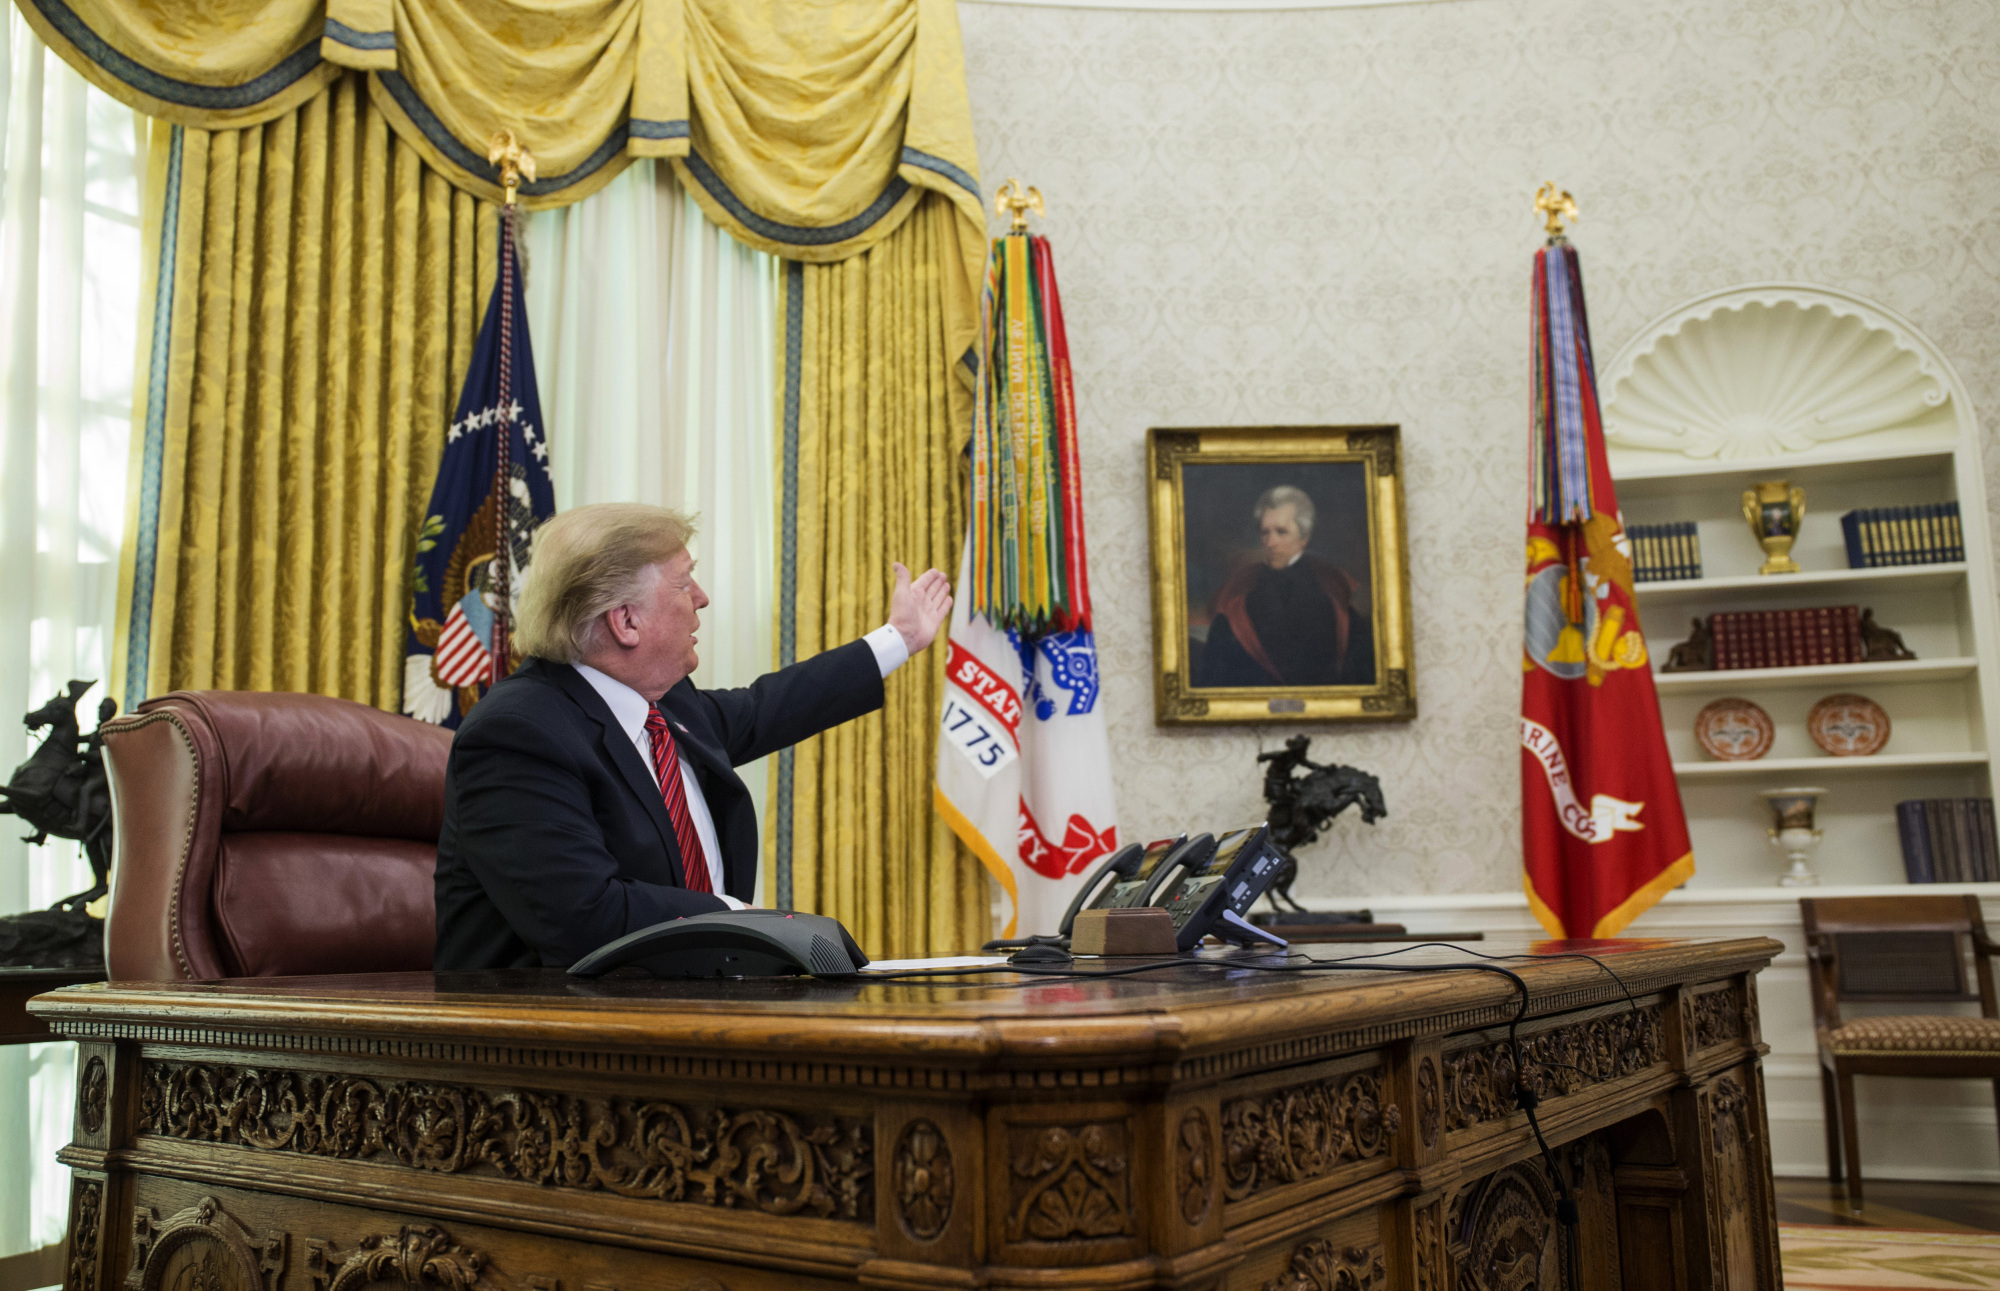 U.S. President Donald Trump speaks in the Oval Office at the White House in Washington on Tuesday. | BLOOMBERG